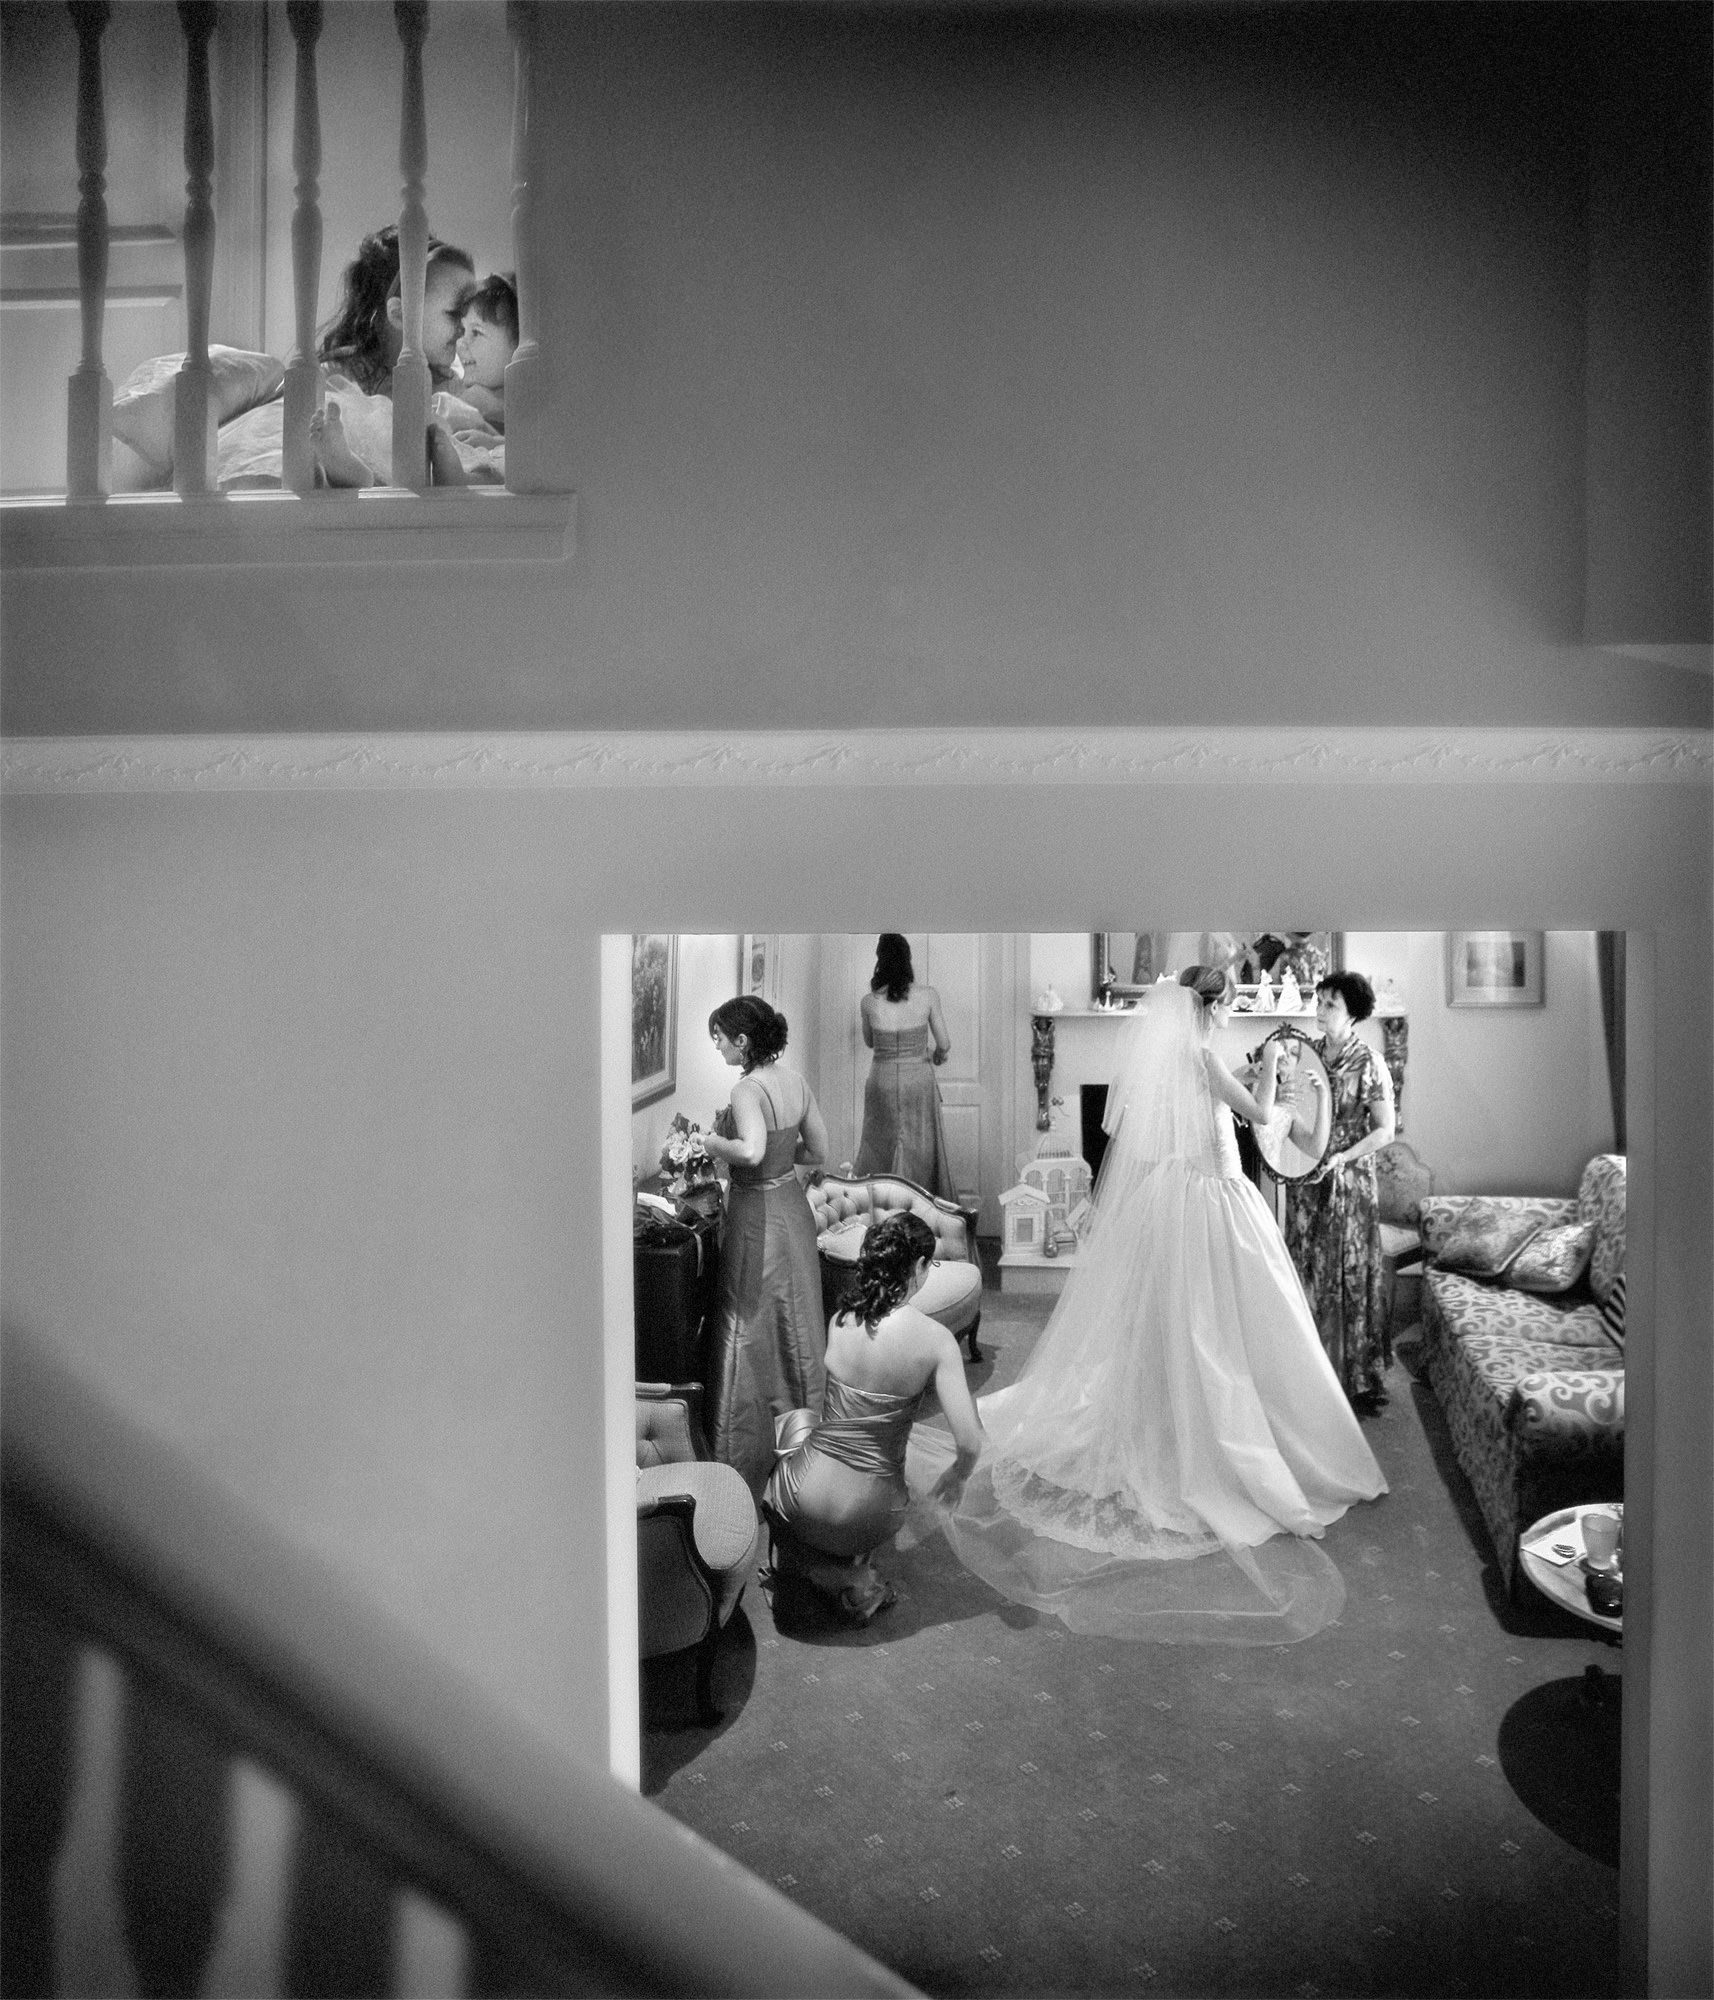 Story-telling photo of kids whispering while bride gets ready downstairs- Studio Impressions Photography